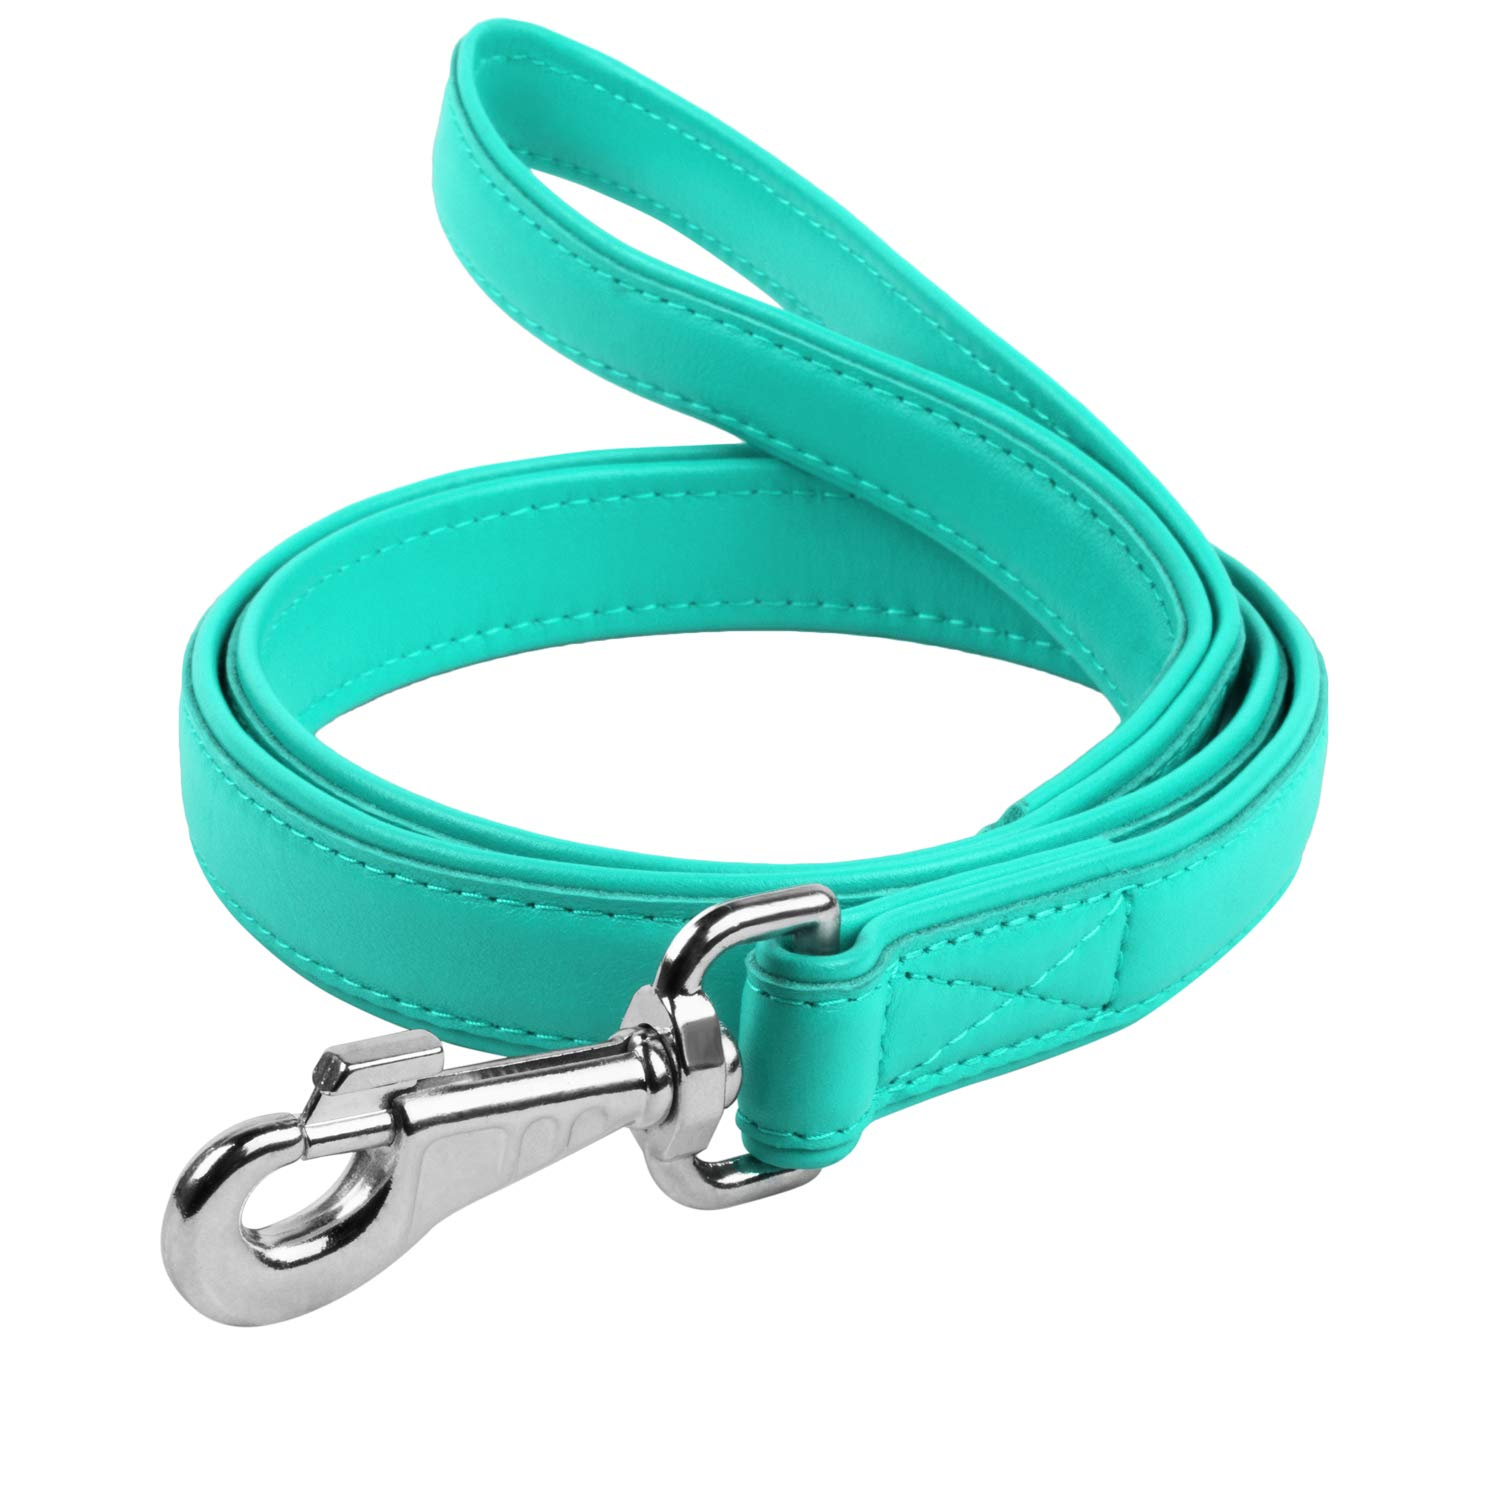 Leather Dog Leash 4 ft - Soft Dog Lead for Small Medium Large Dogs Puppy - Red Blue Pink Purple Green Black Pet Leashes for Outdoor Walking Running Training (Mint Green, 4 Ft x 1'' Wide)